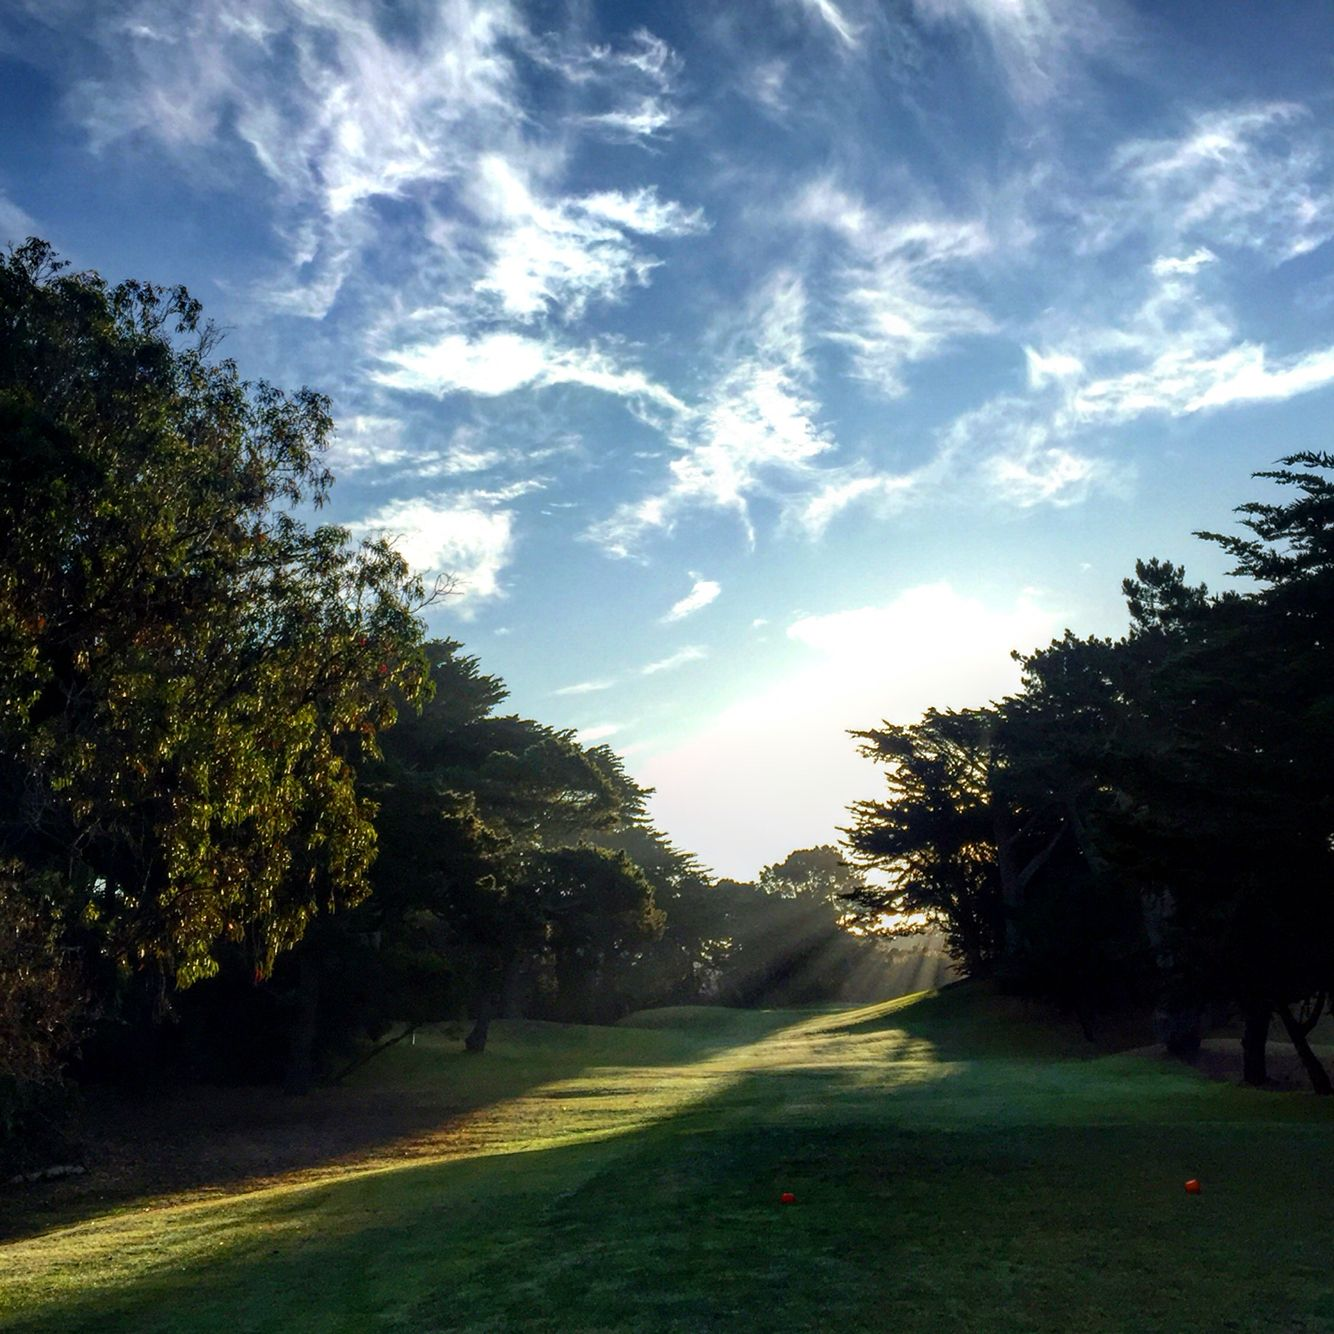 Golden Gate Park Golf Course San Francisco, CA Scenery